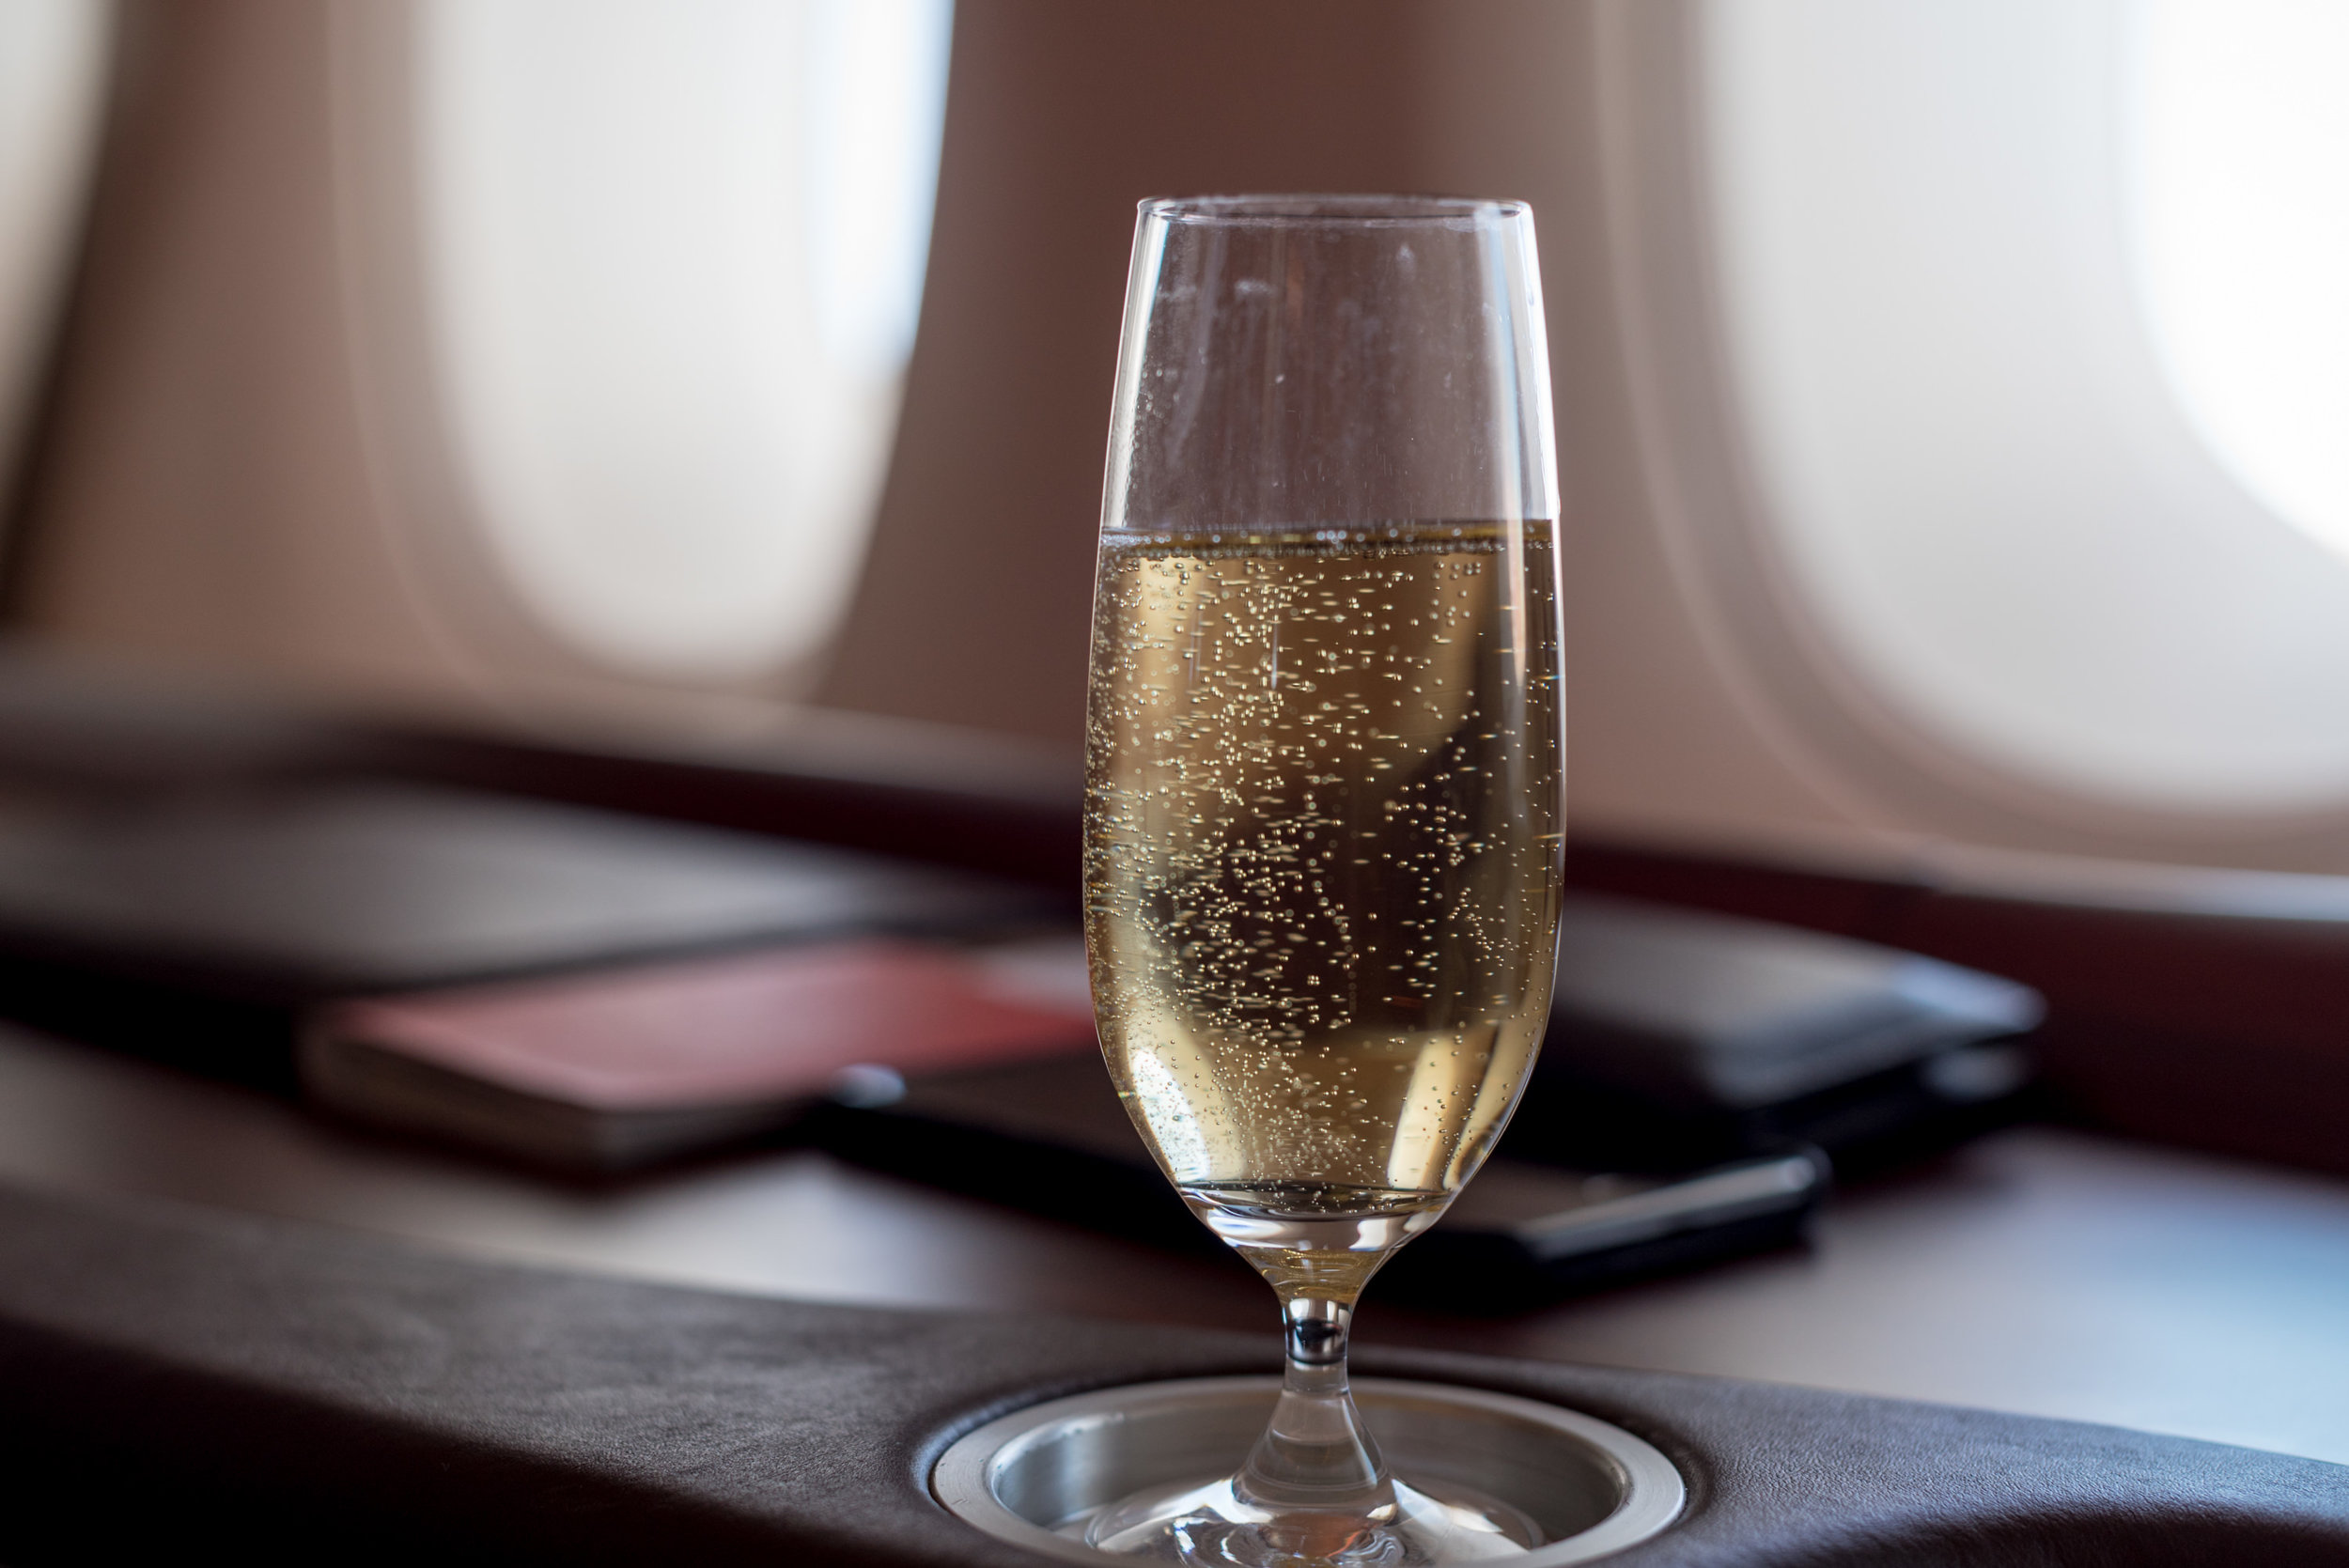 Krug Champagne   Singapore Airlines Suites A380-800 - AKL to SIN